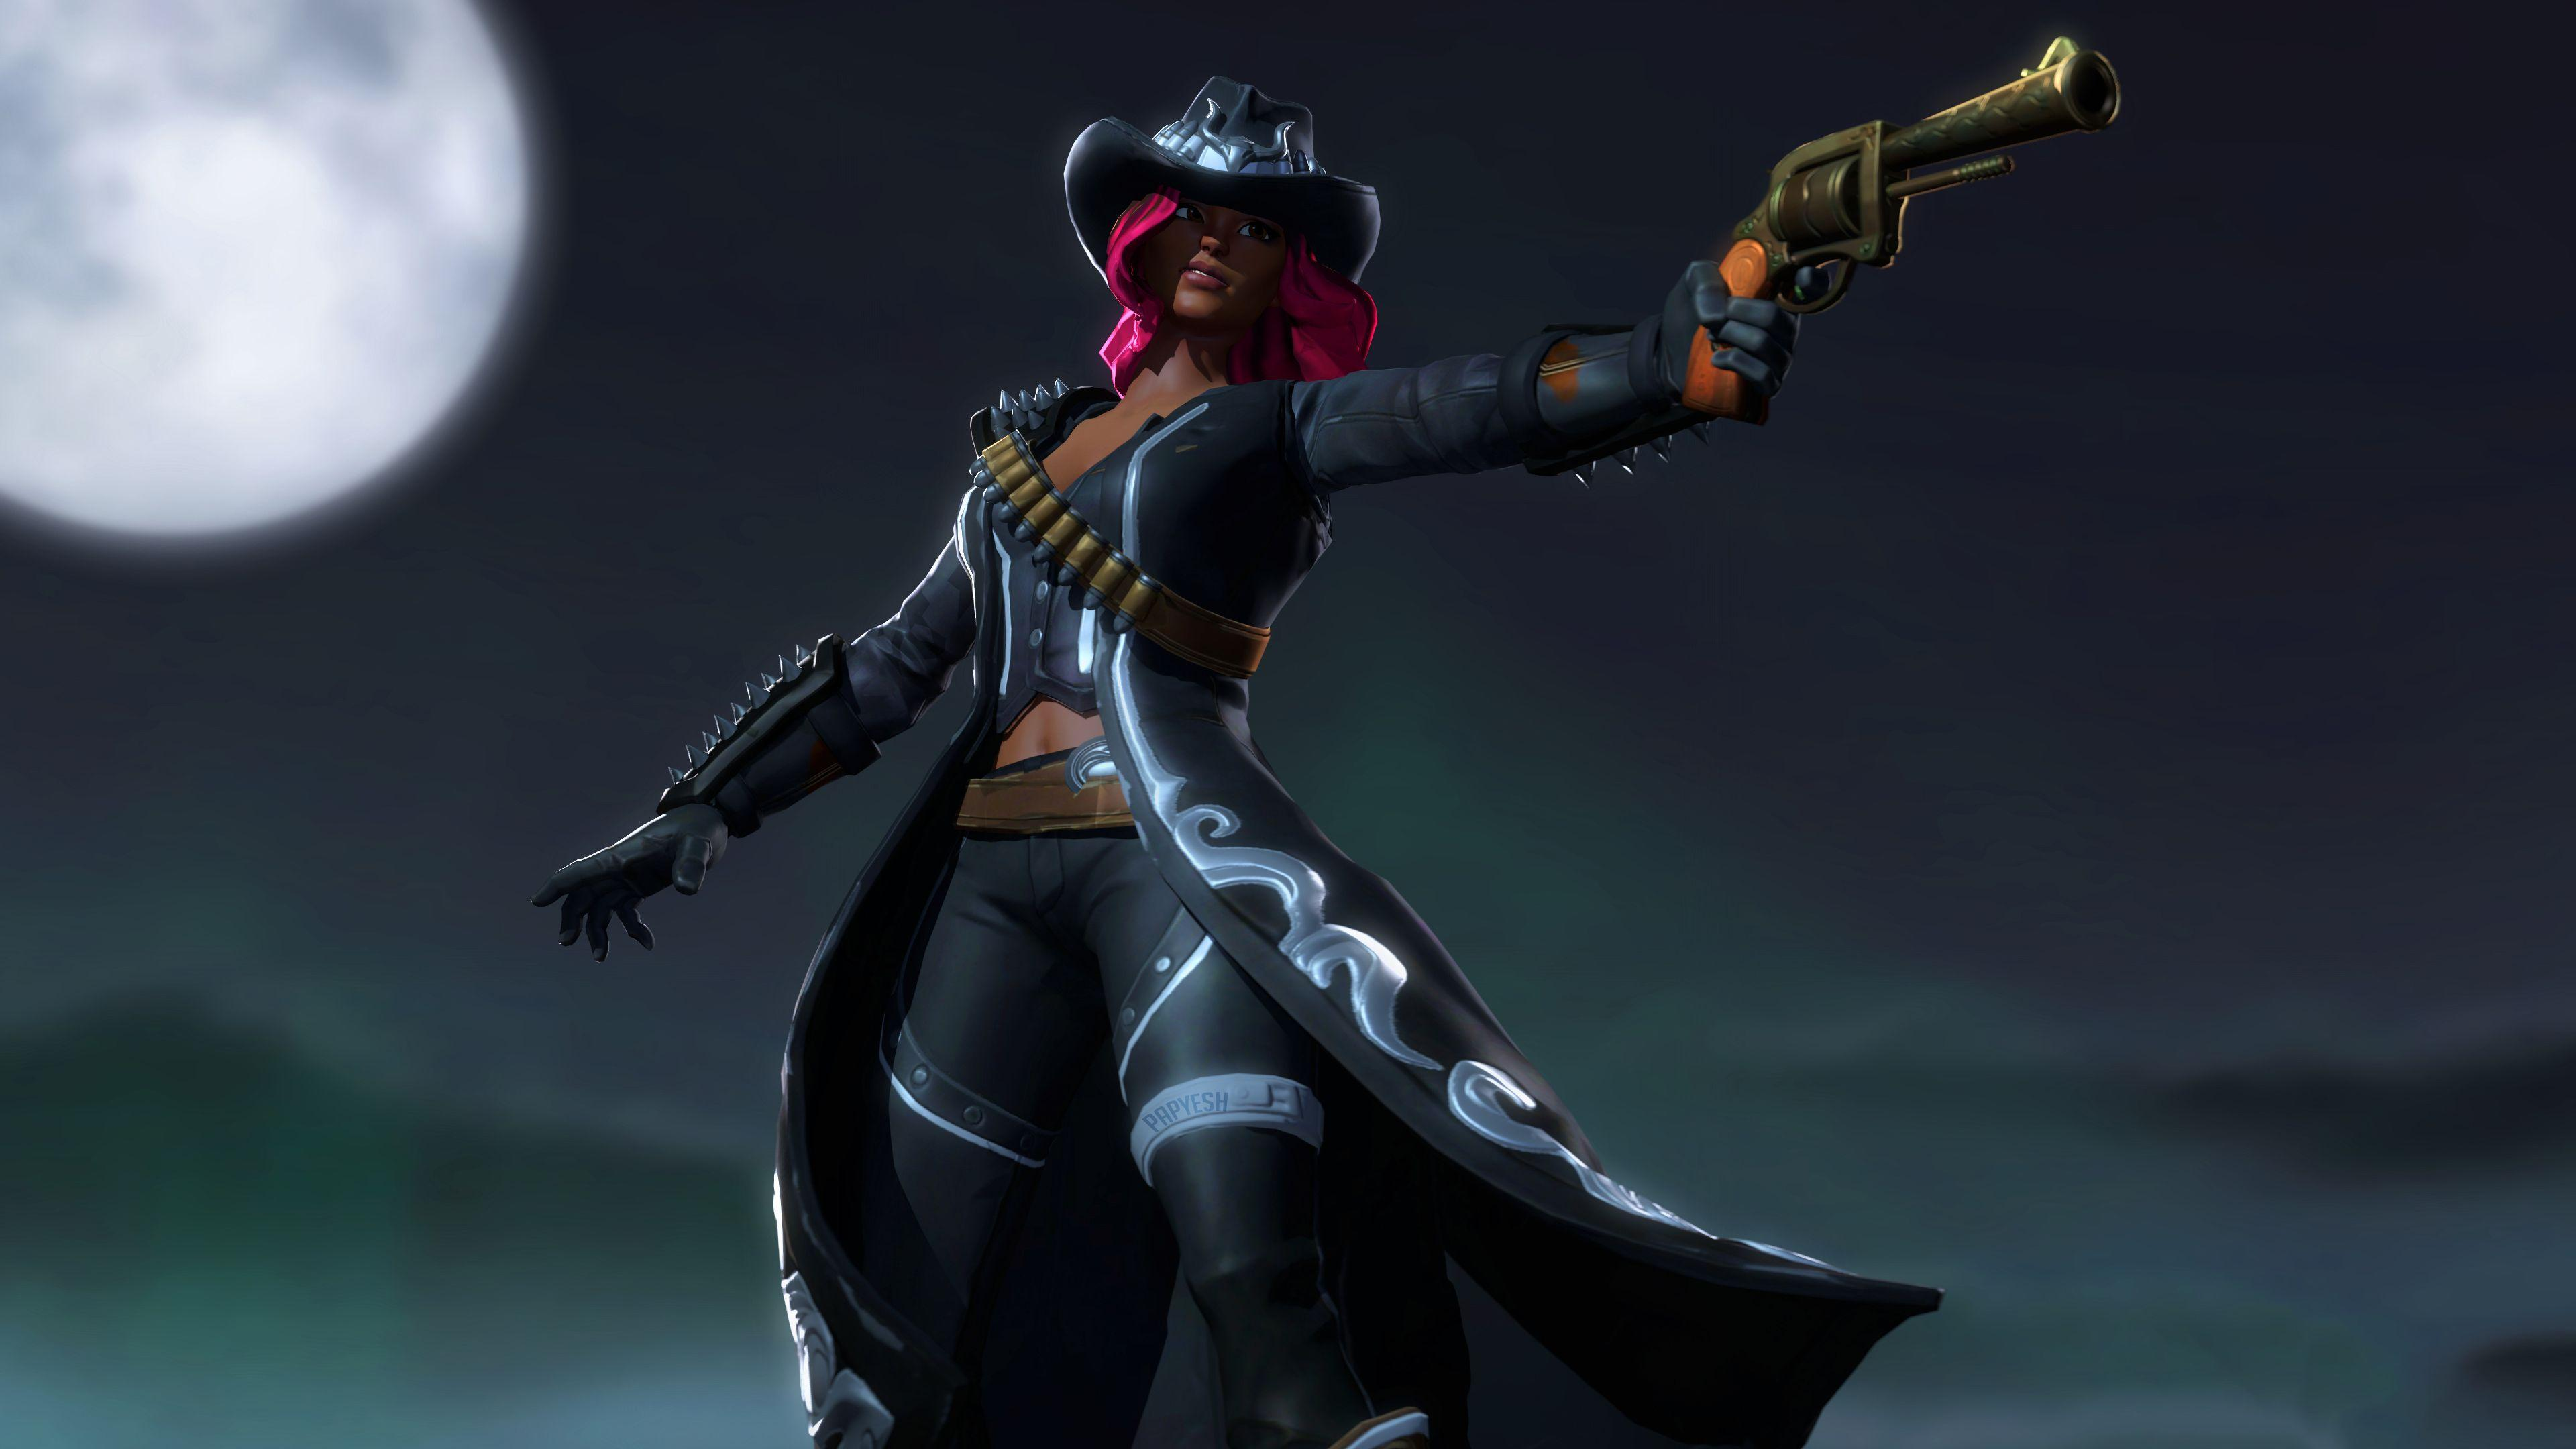 Fortnite Calamity skin wallpapers